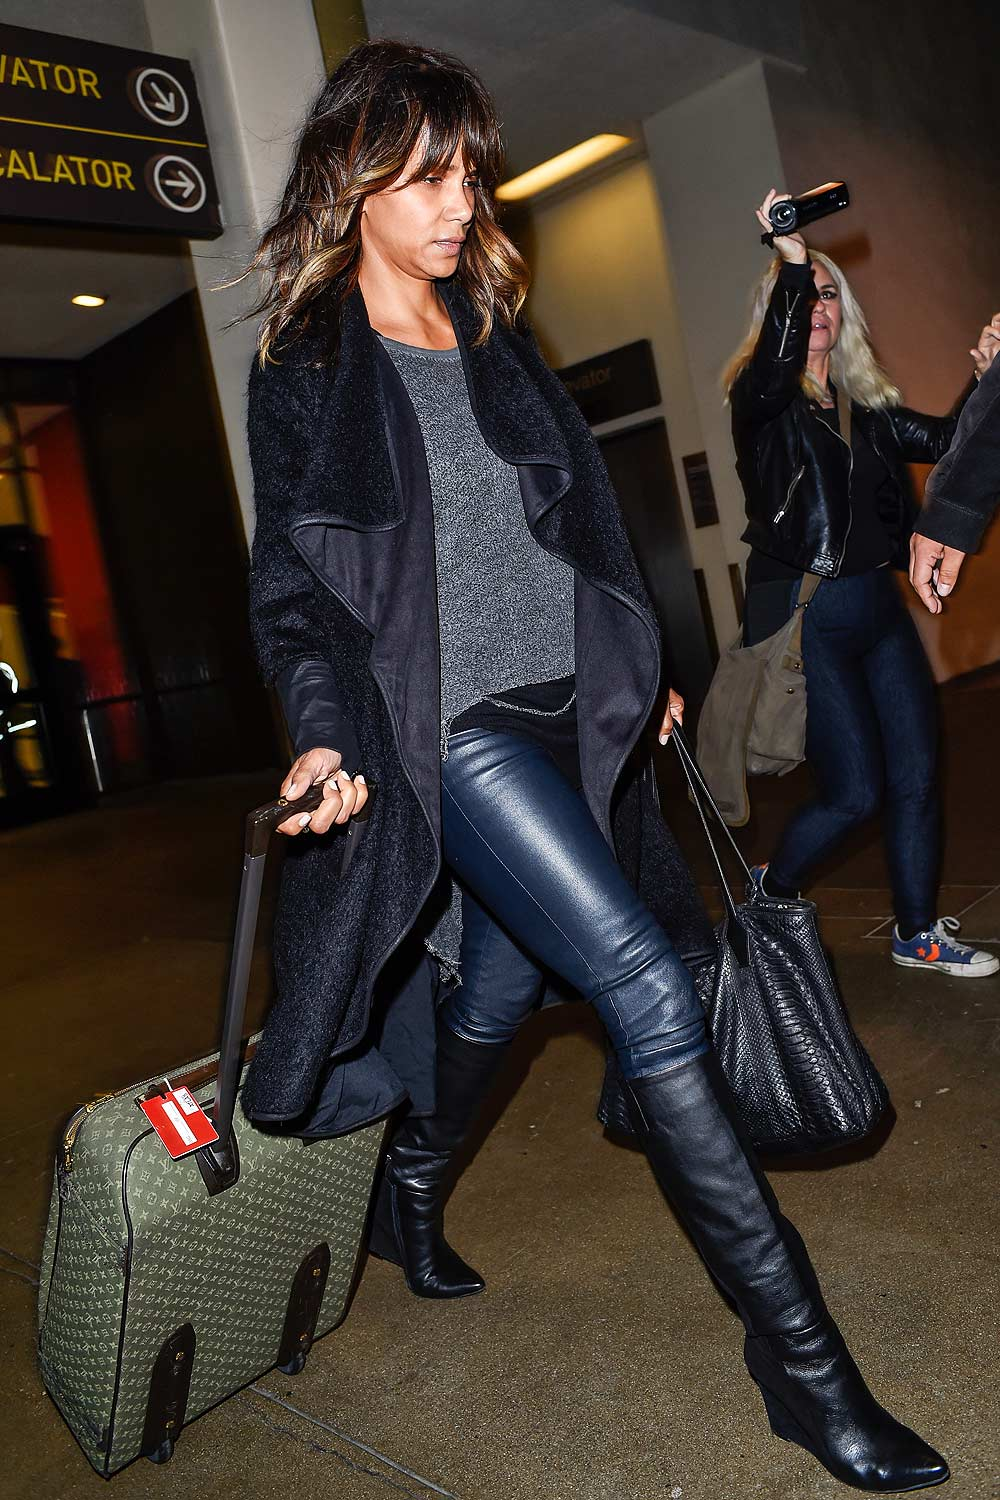 Halle Berry is seen arriving on a flight at LAX airport